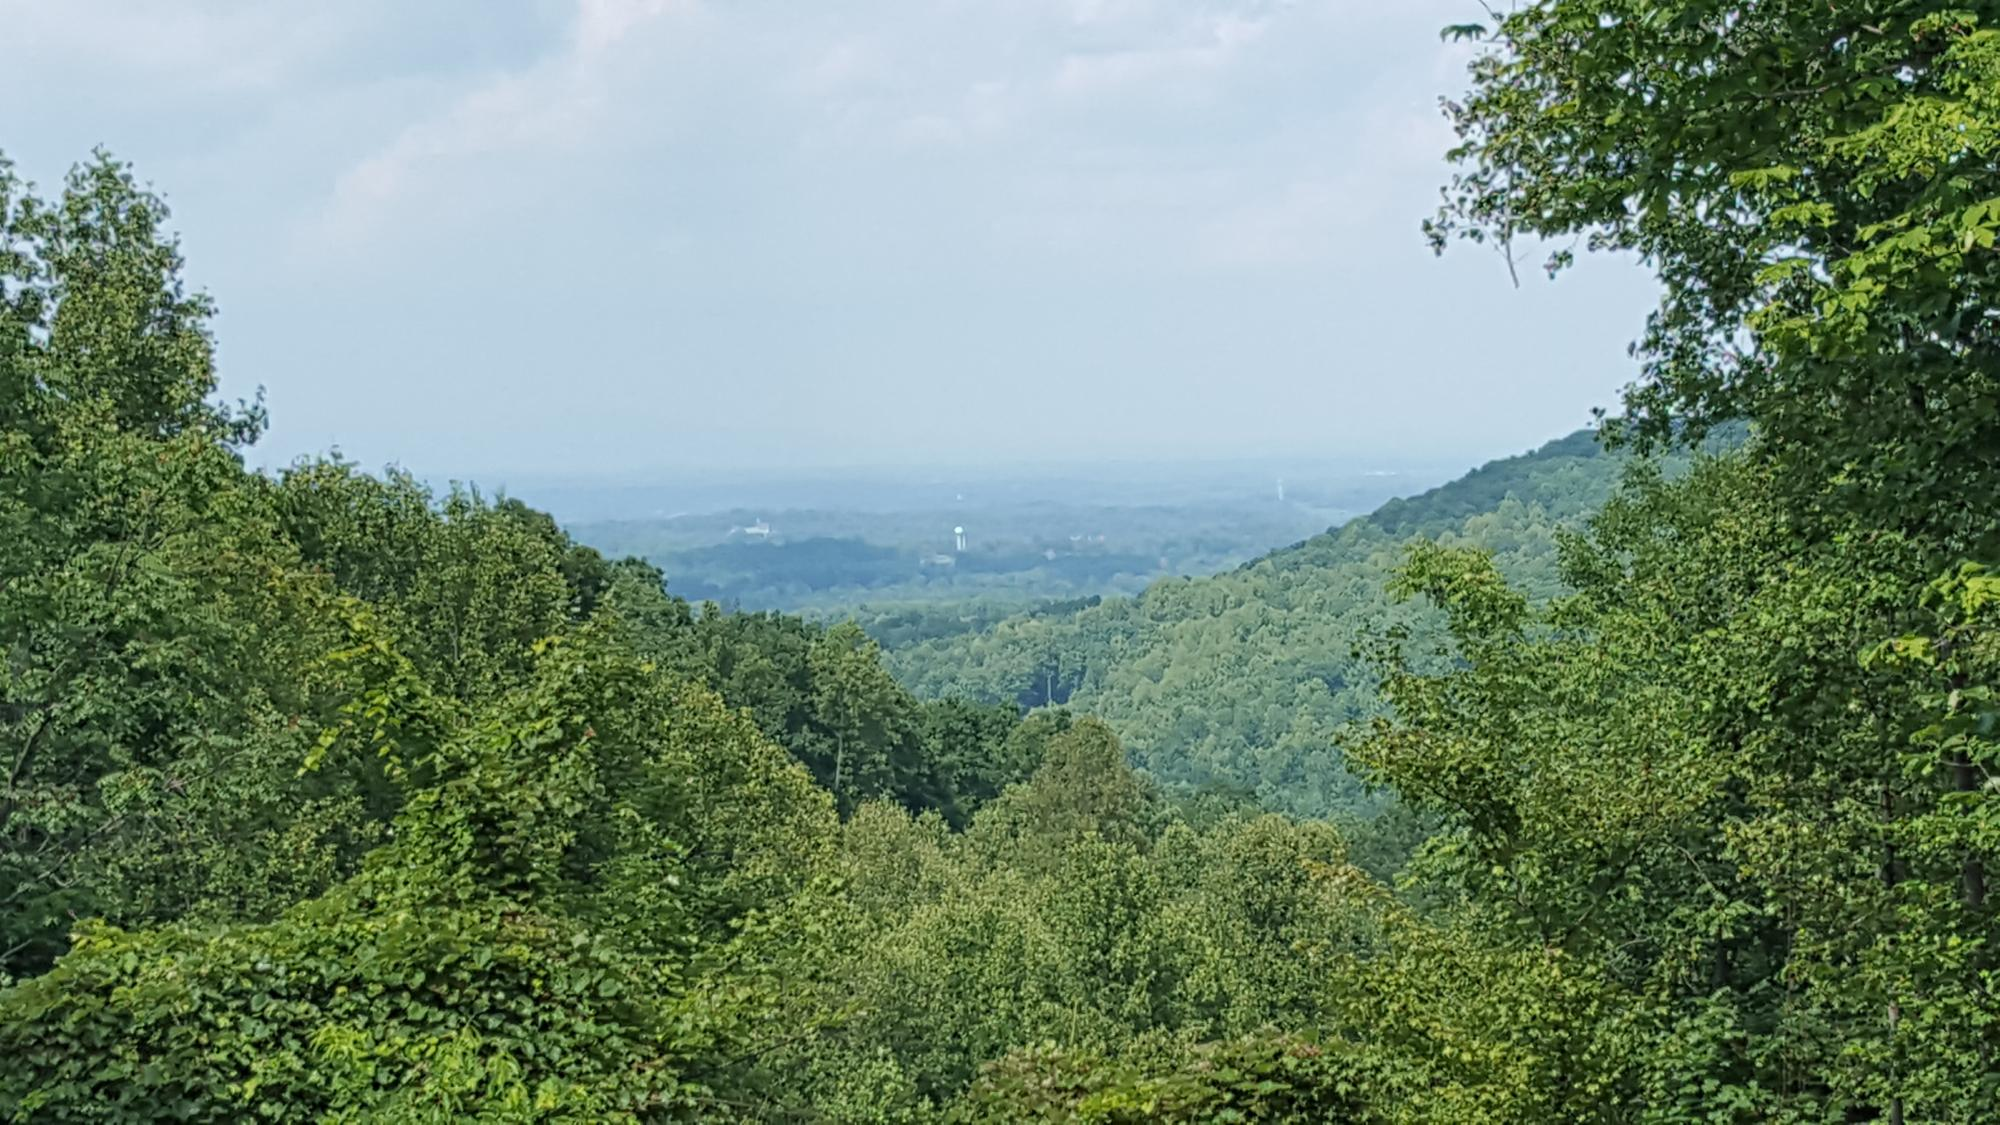 The view of Wilkesboro,NC